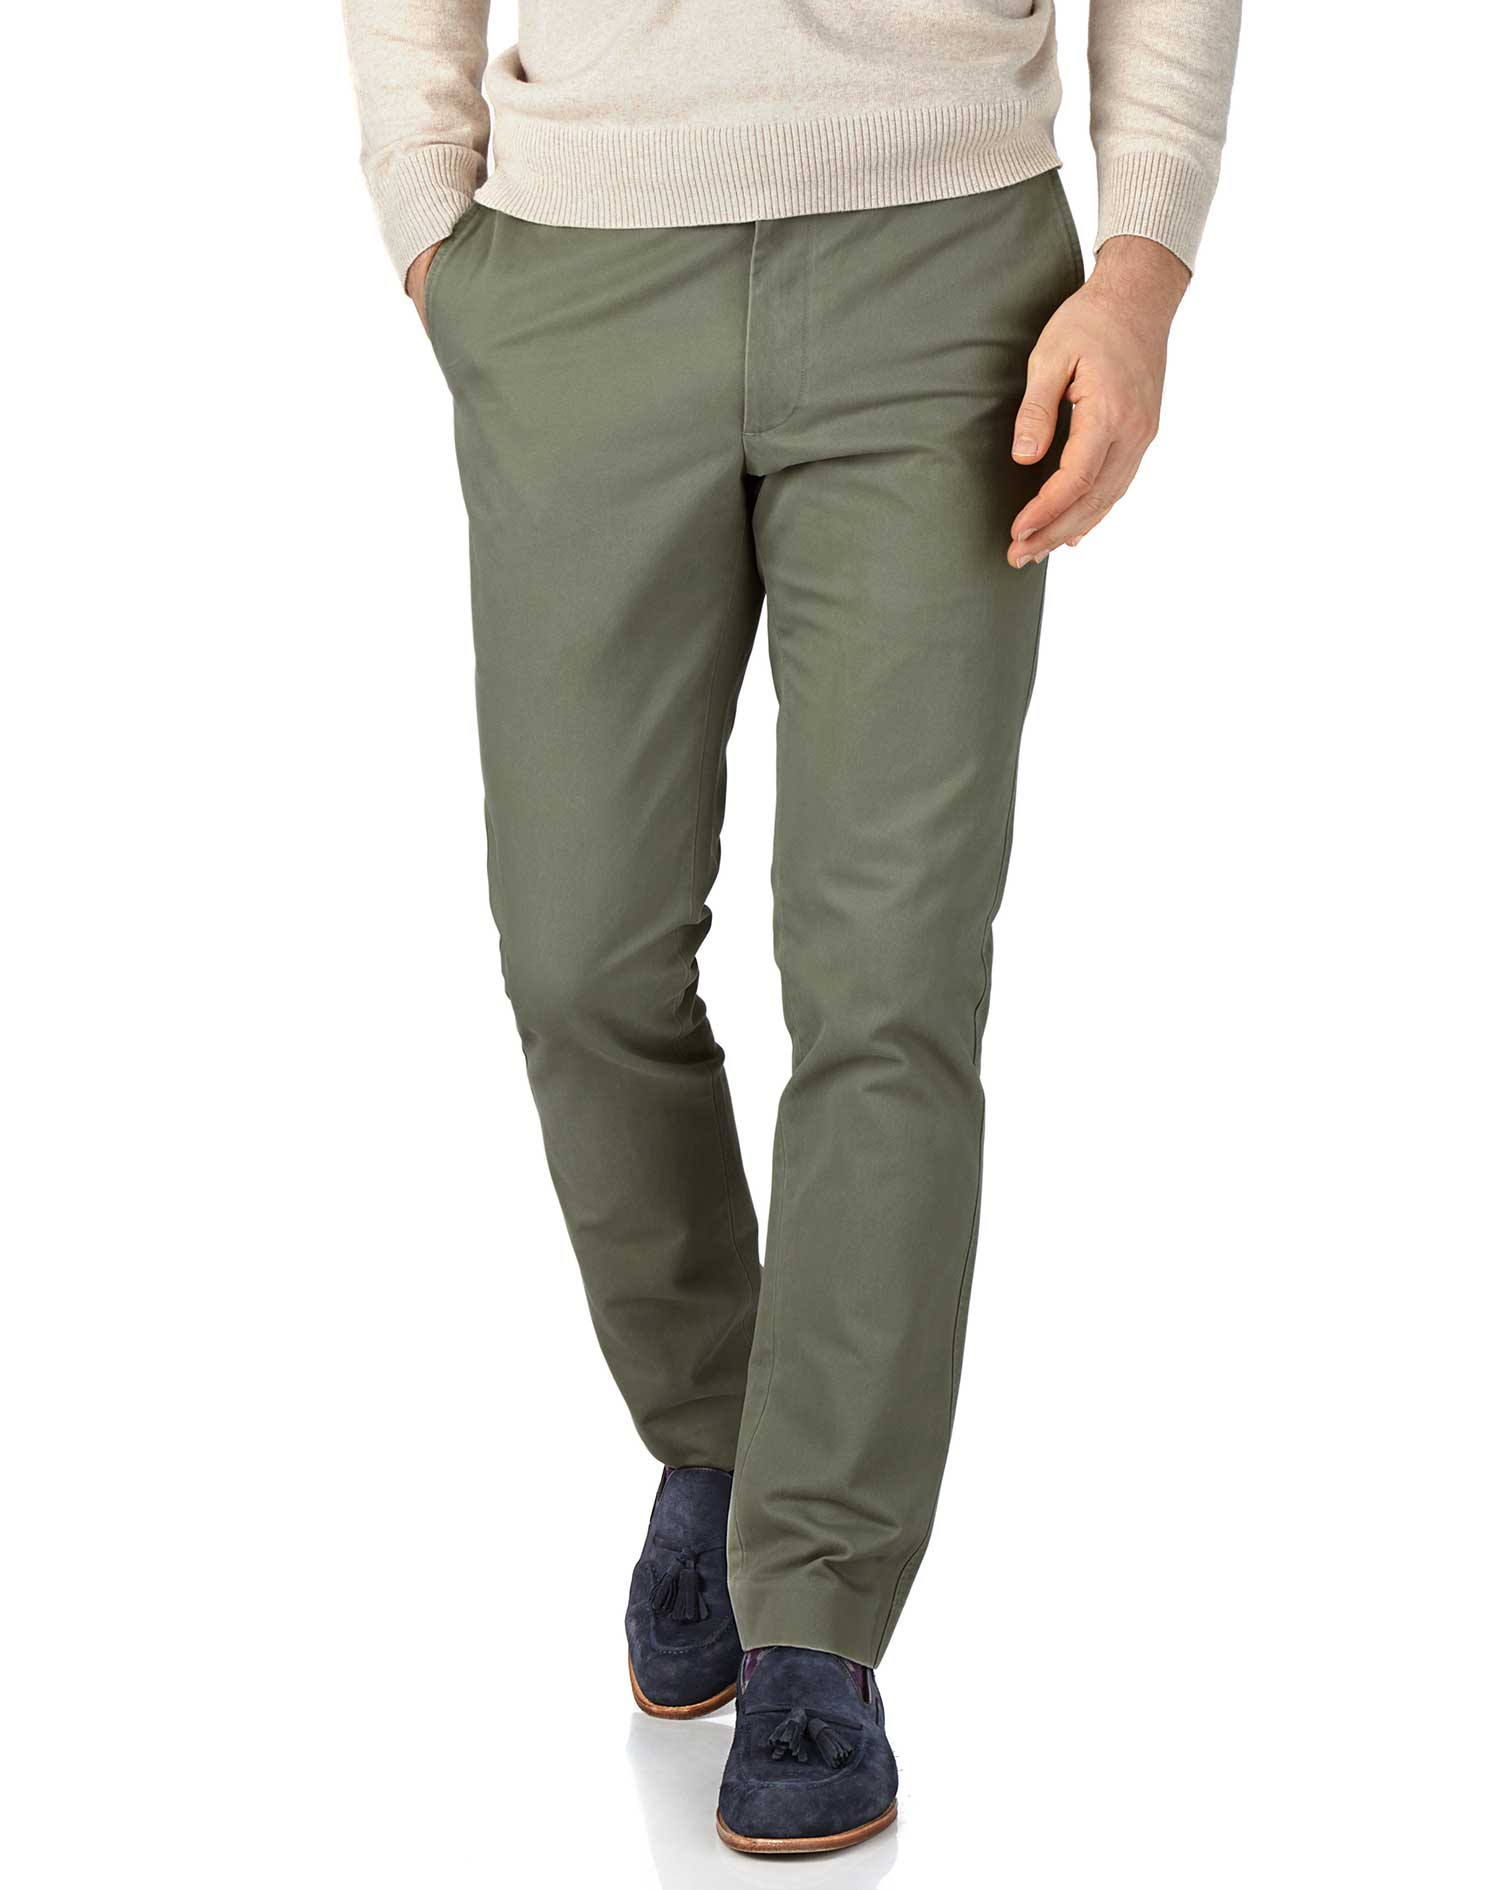 Light Green Extra Slim Fit Flat Front Cotton Chino Trousers Size W36 L38 by Charles Tyrwhitt